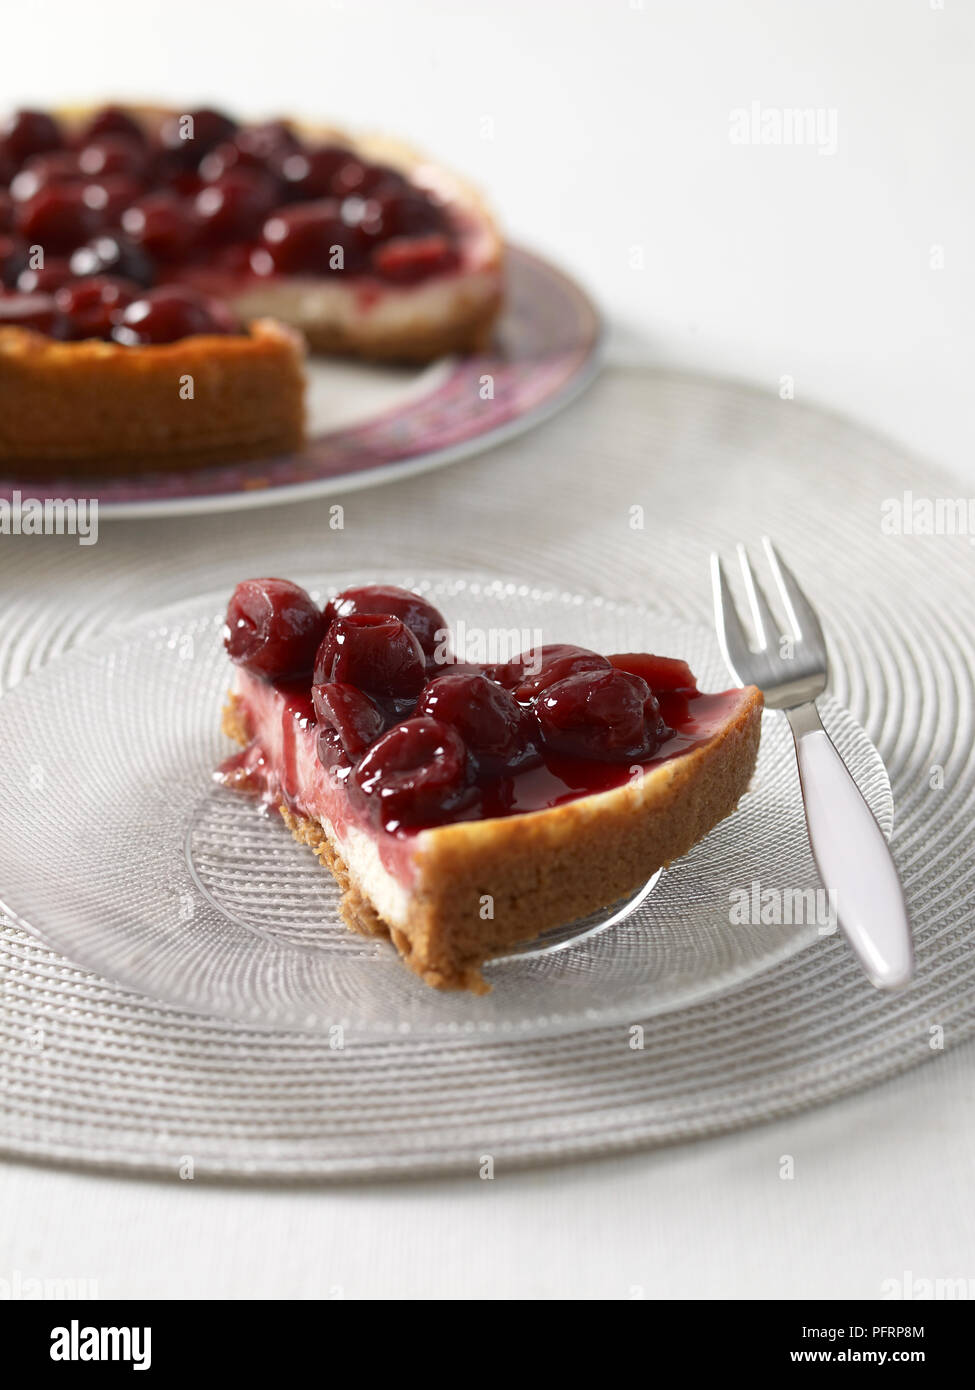 Cheery cheesecake slice on glass plate, with a dessert fork nearby - Stock Image